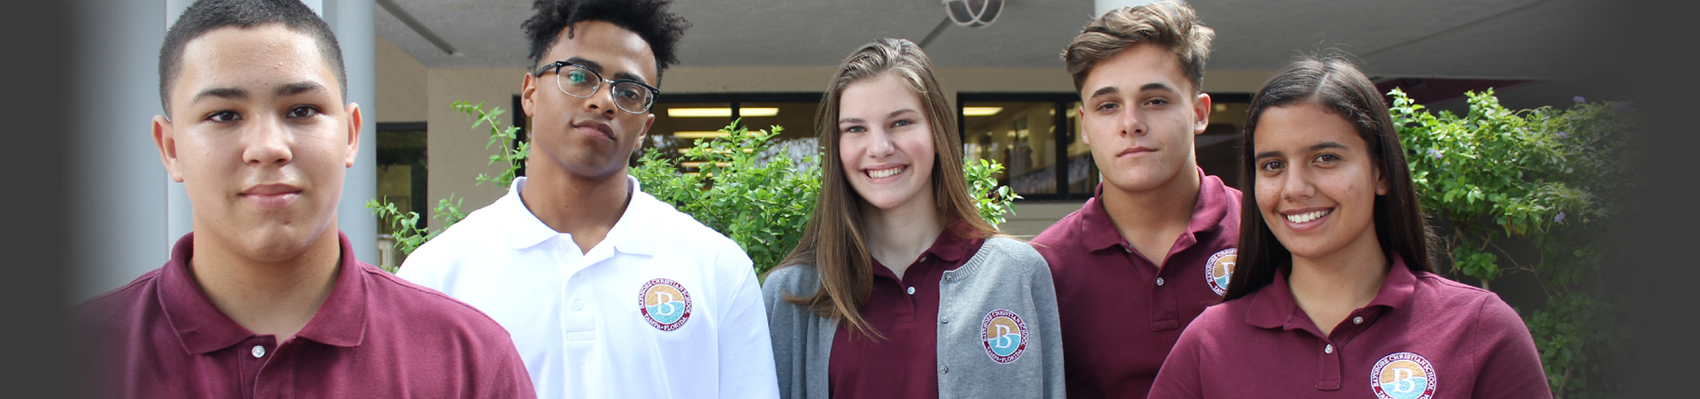 students in Bayshore uniforms